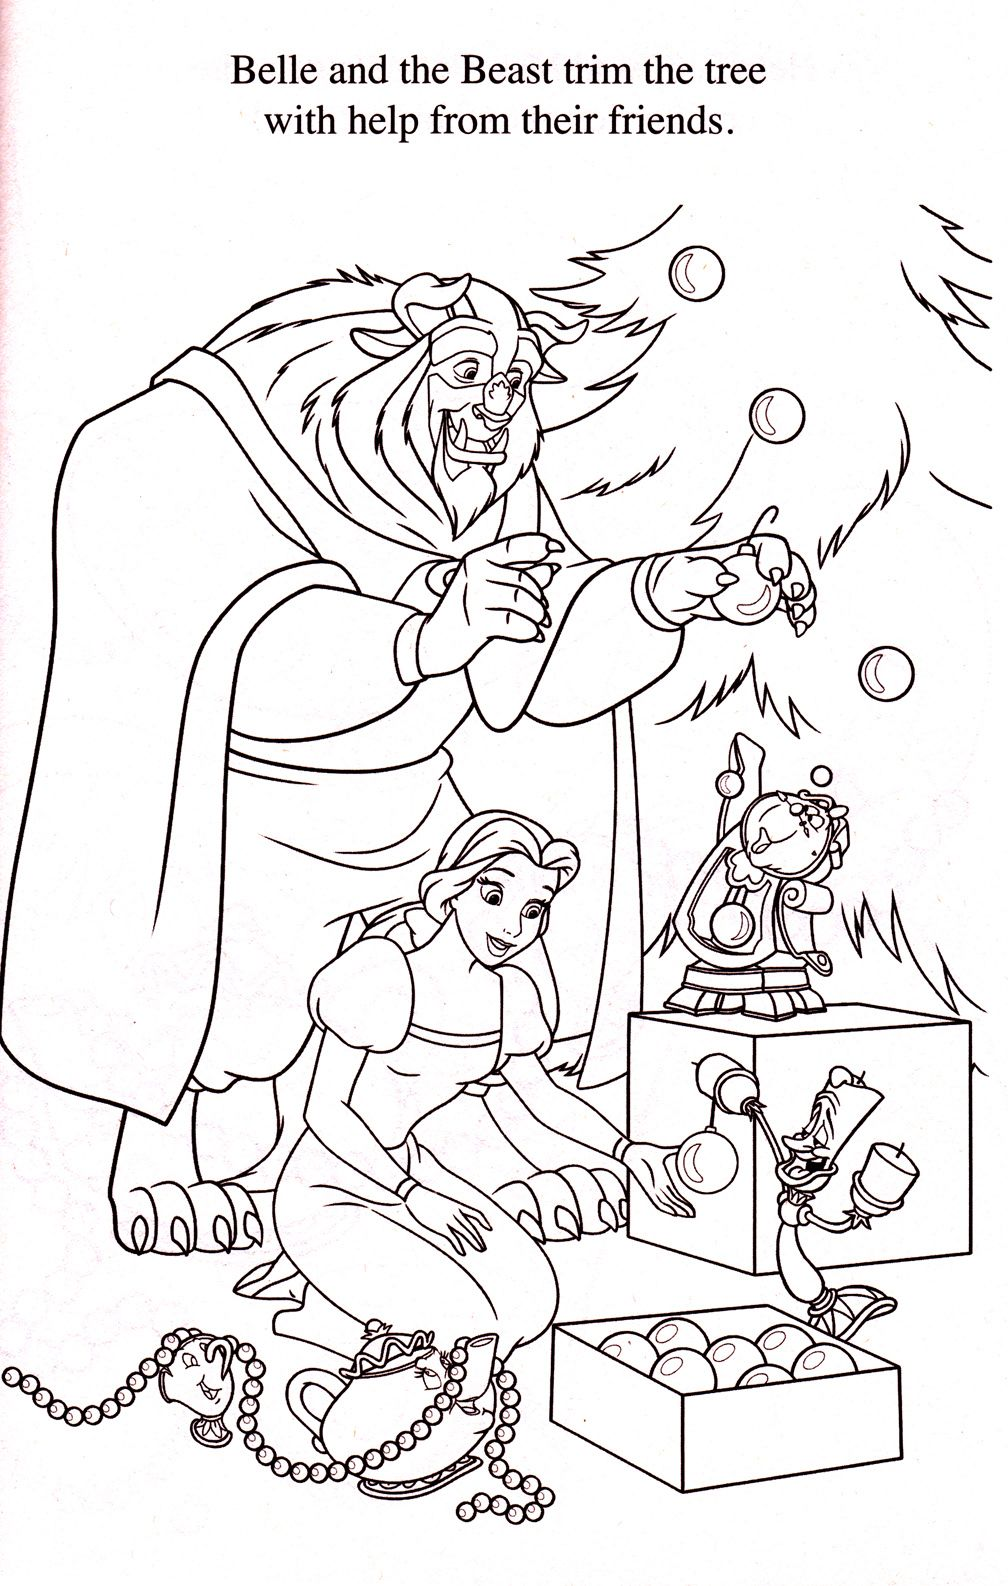 Beauty And The Beast Coloring Pages Disney Coloring Pages Disney Princess Coloring Pages Christmas Coloring Pages